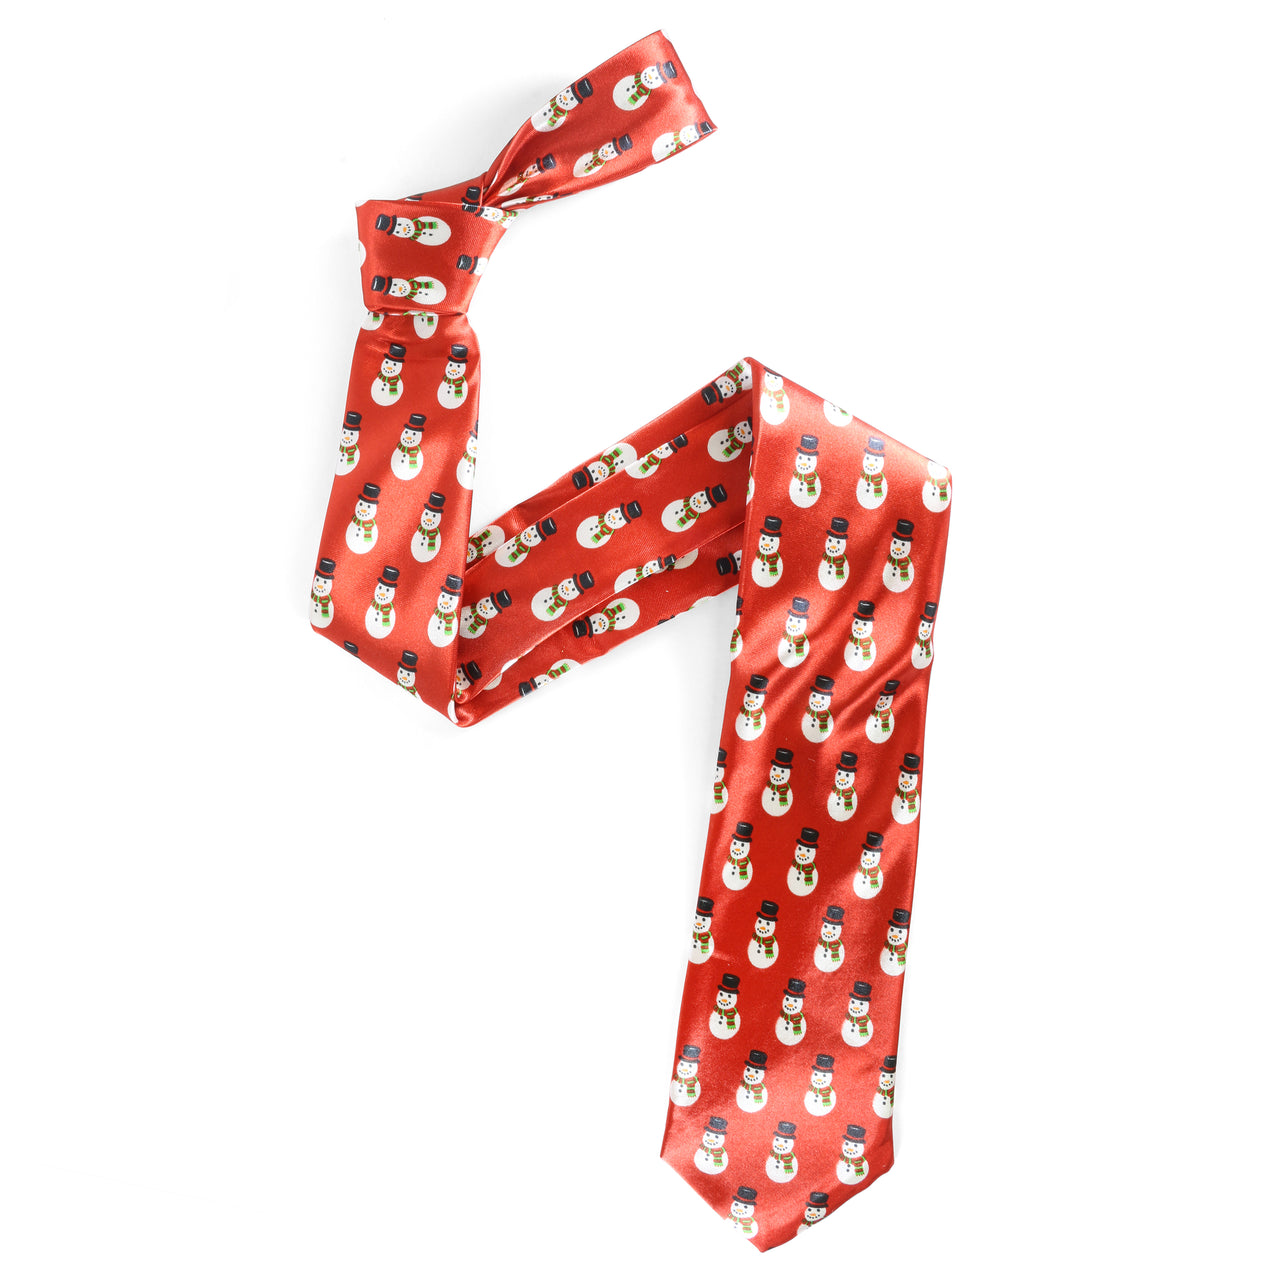 Christmas Tie - Snowman Repeat - Red